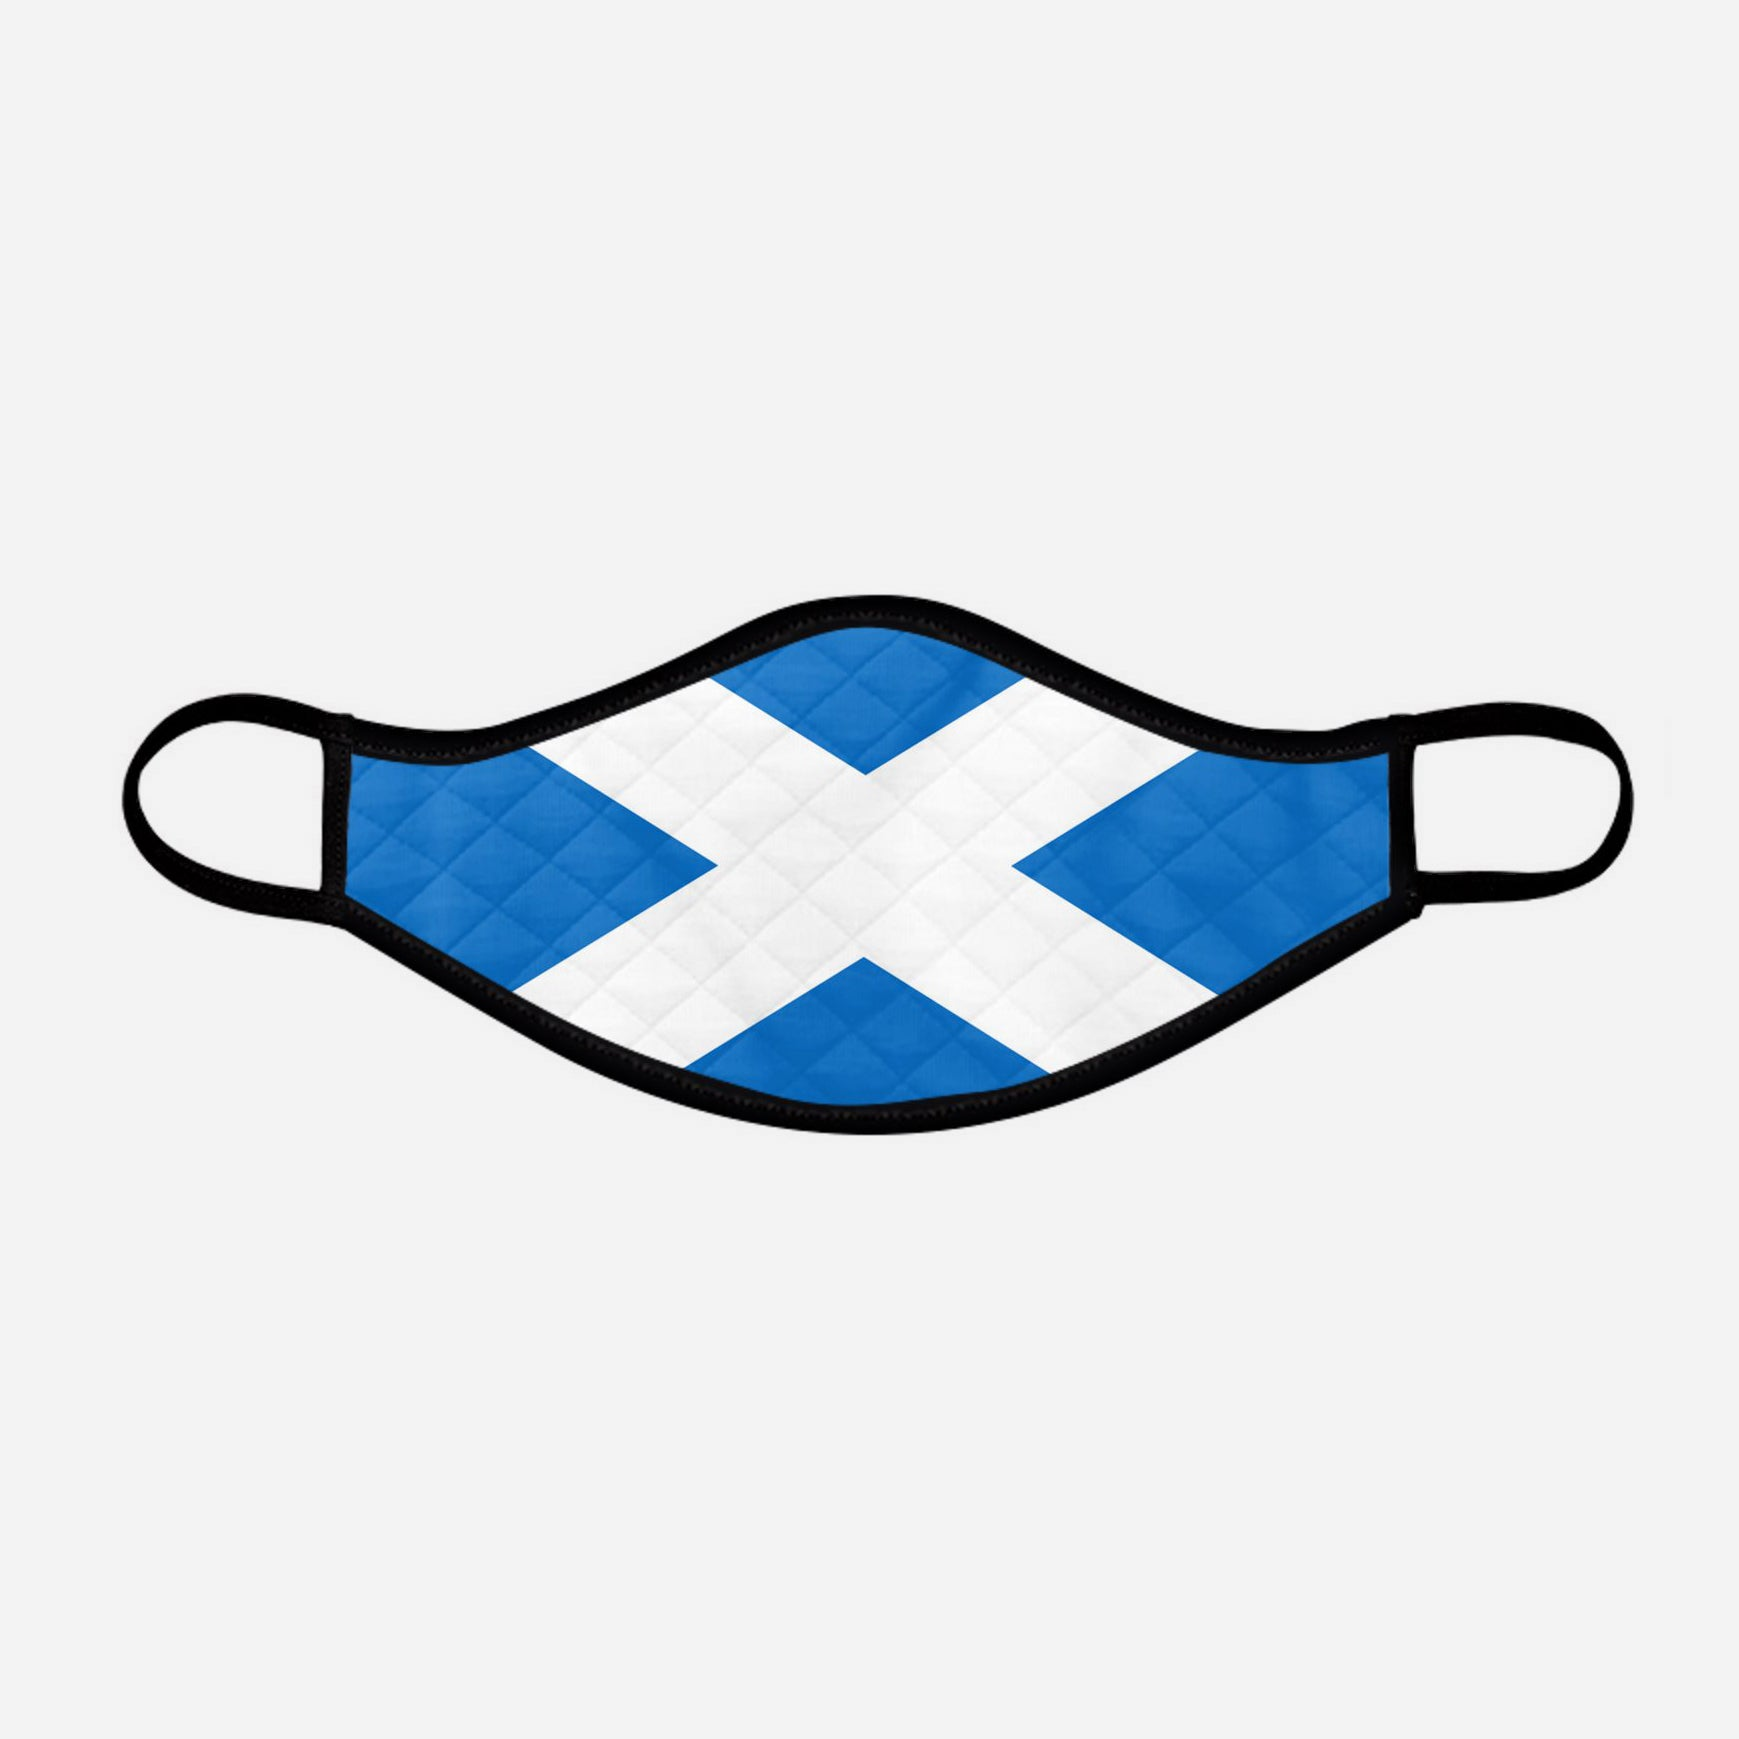 Scottish Saltire face mask cloth covering small